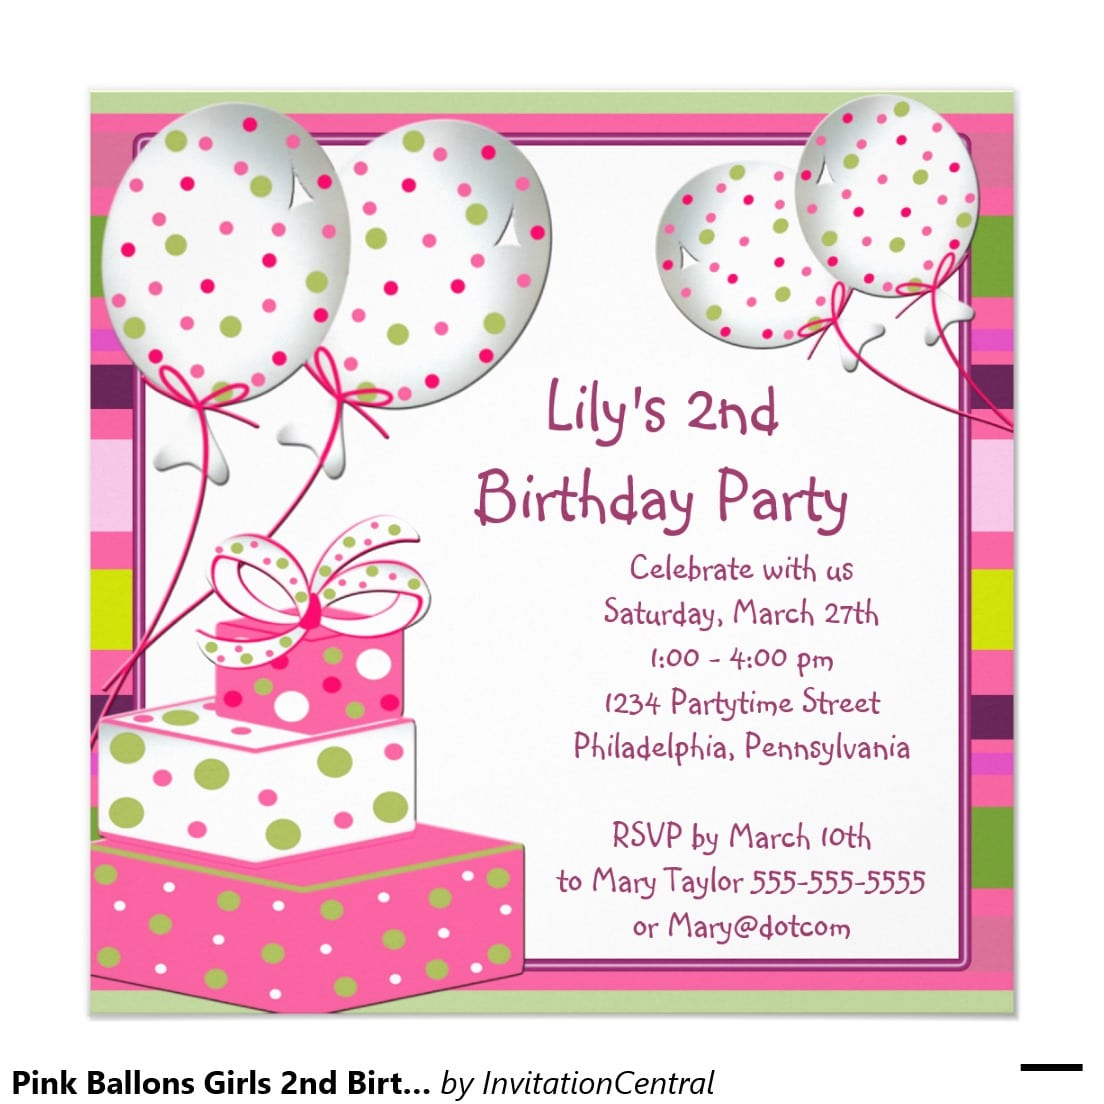 Invitation Cards For Birthday Party Cards Ideas With Invitation